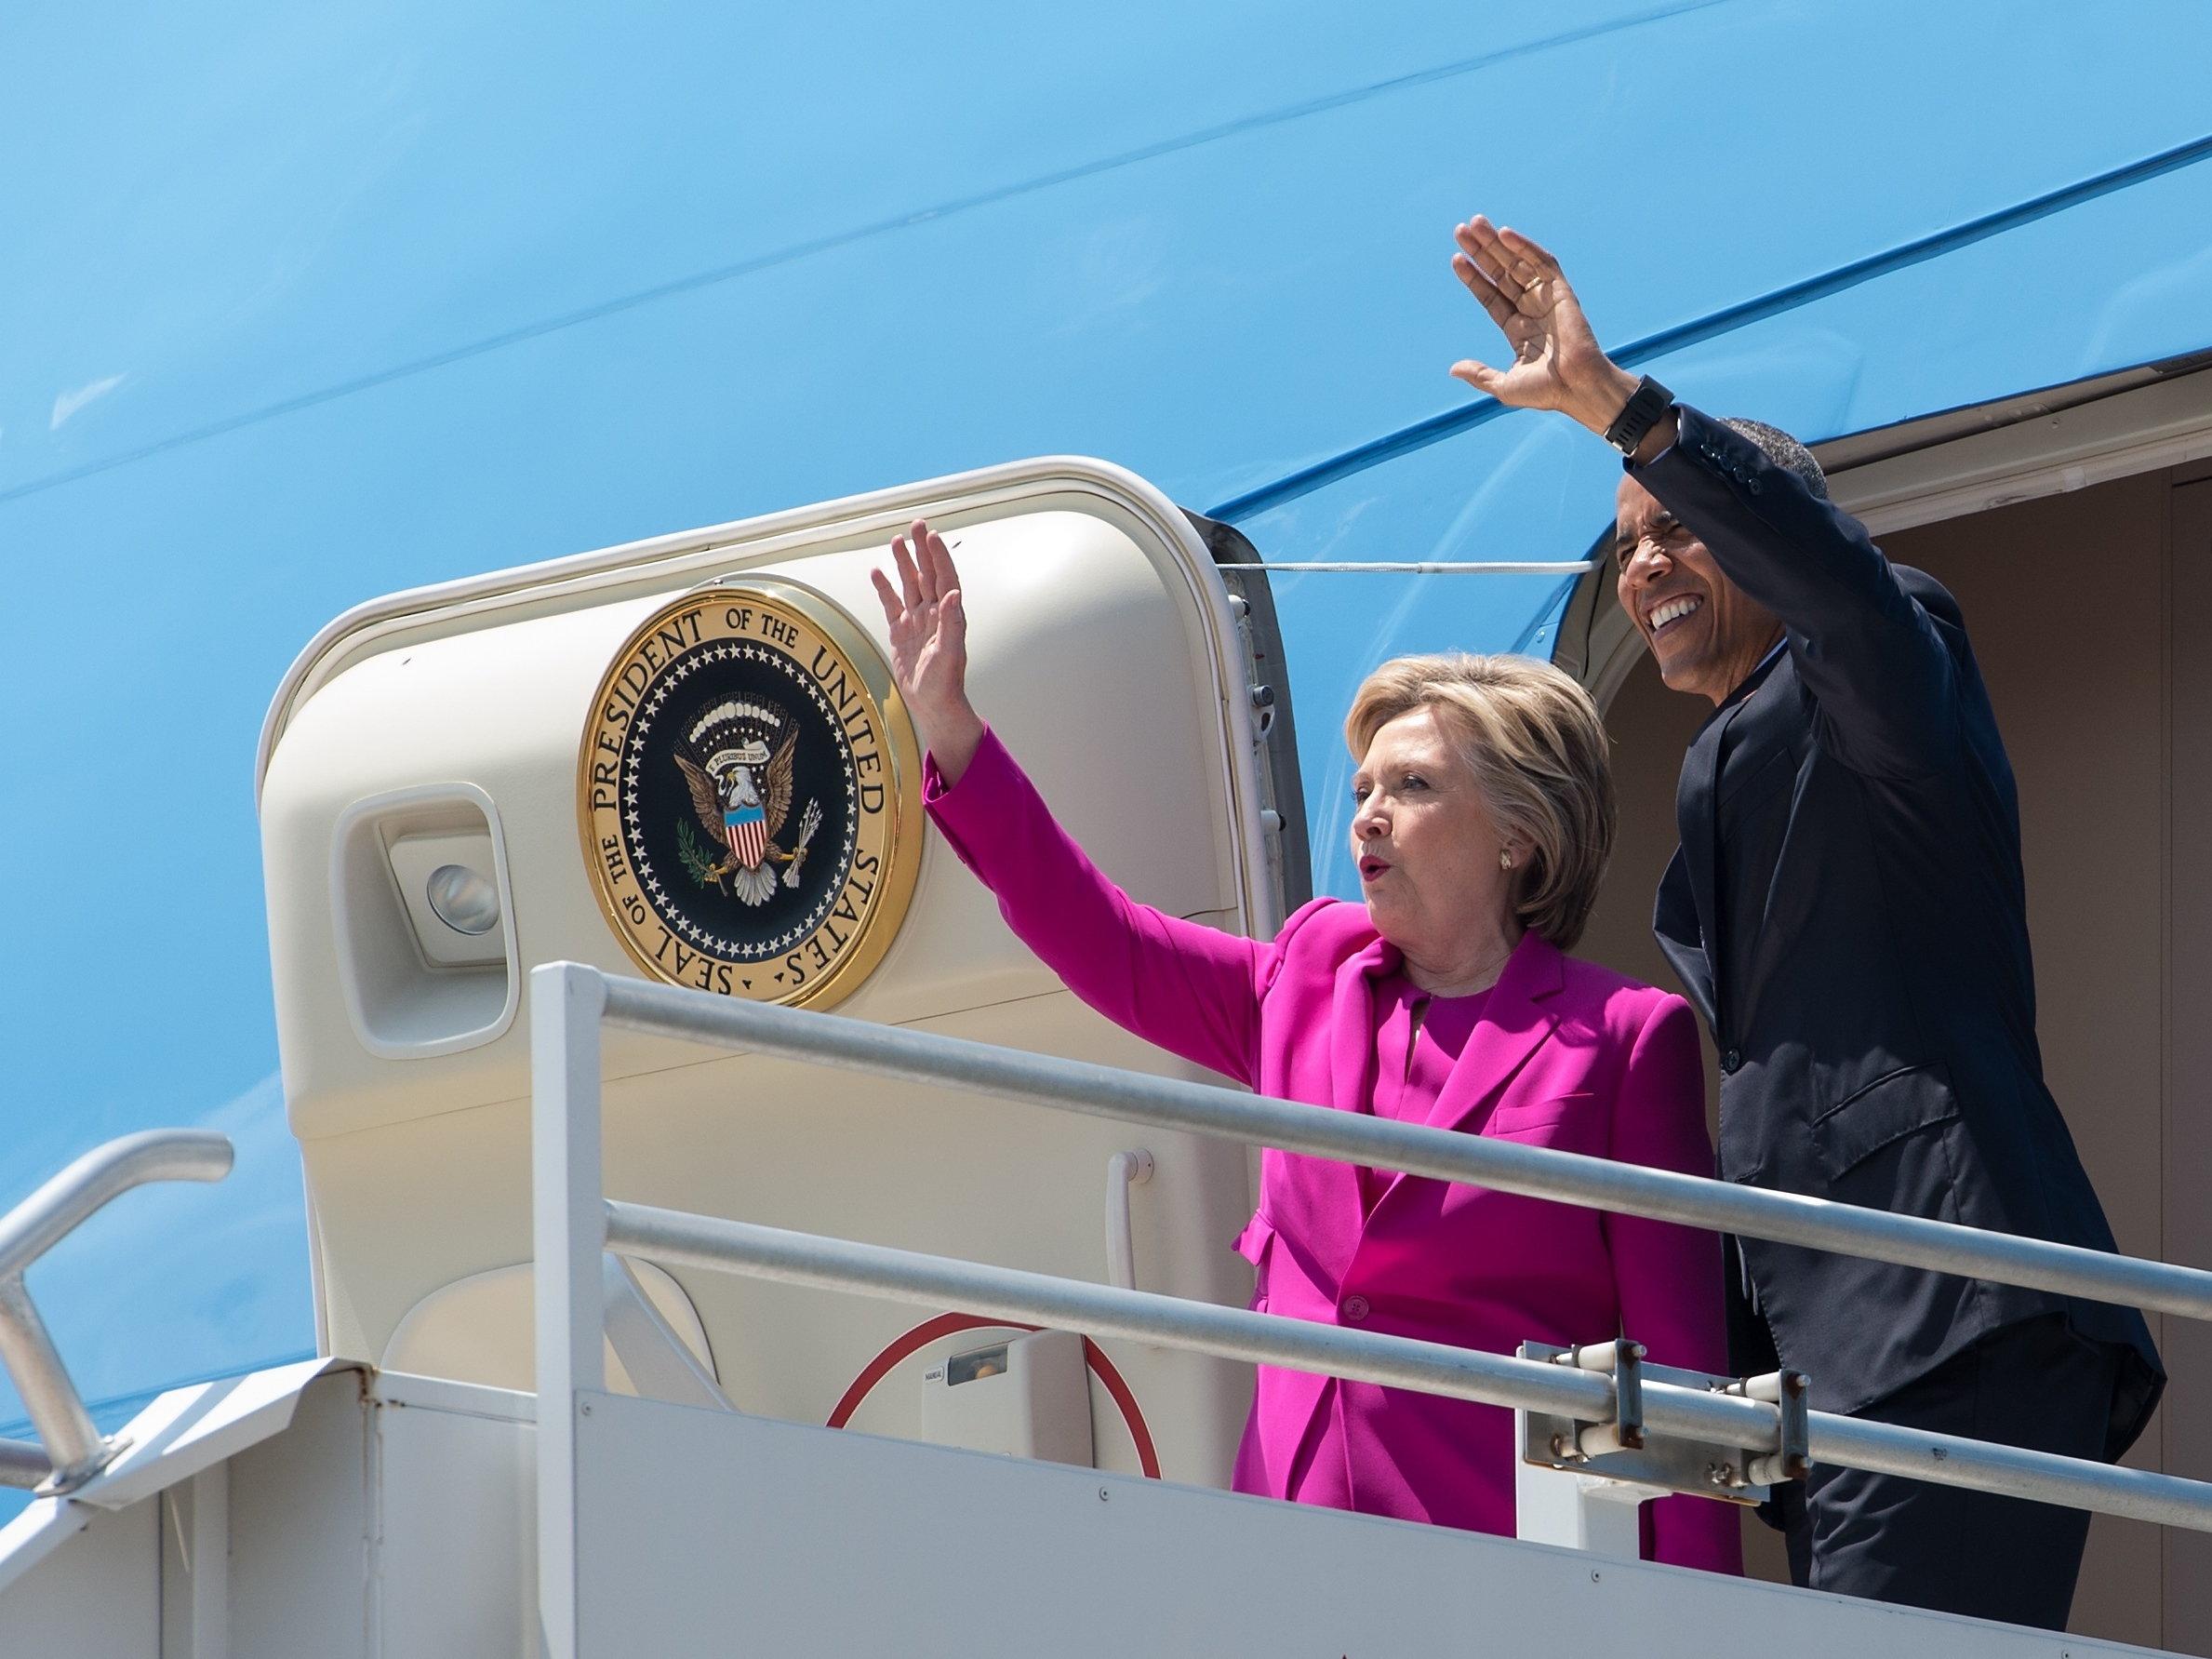 President Obama and Hillary Clinton walk off Air Force One in Charlotte, N.C., to attend a Clinton campaign event. The costs of that flight will be repaid by the Democratic National Committee. (Photo by Nicholas Kamm/AFP/Getty Images)